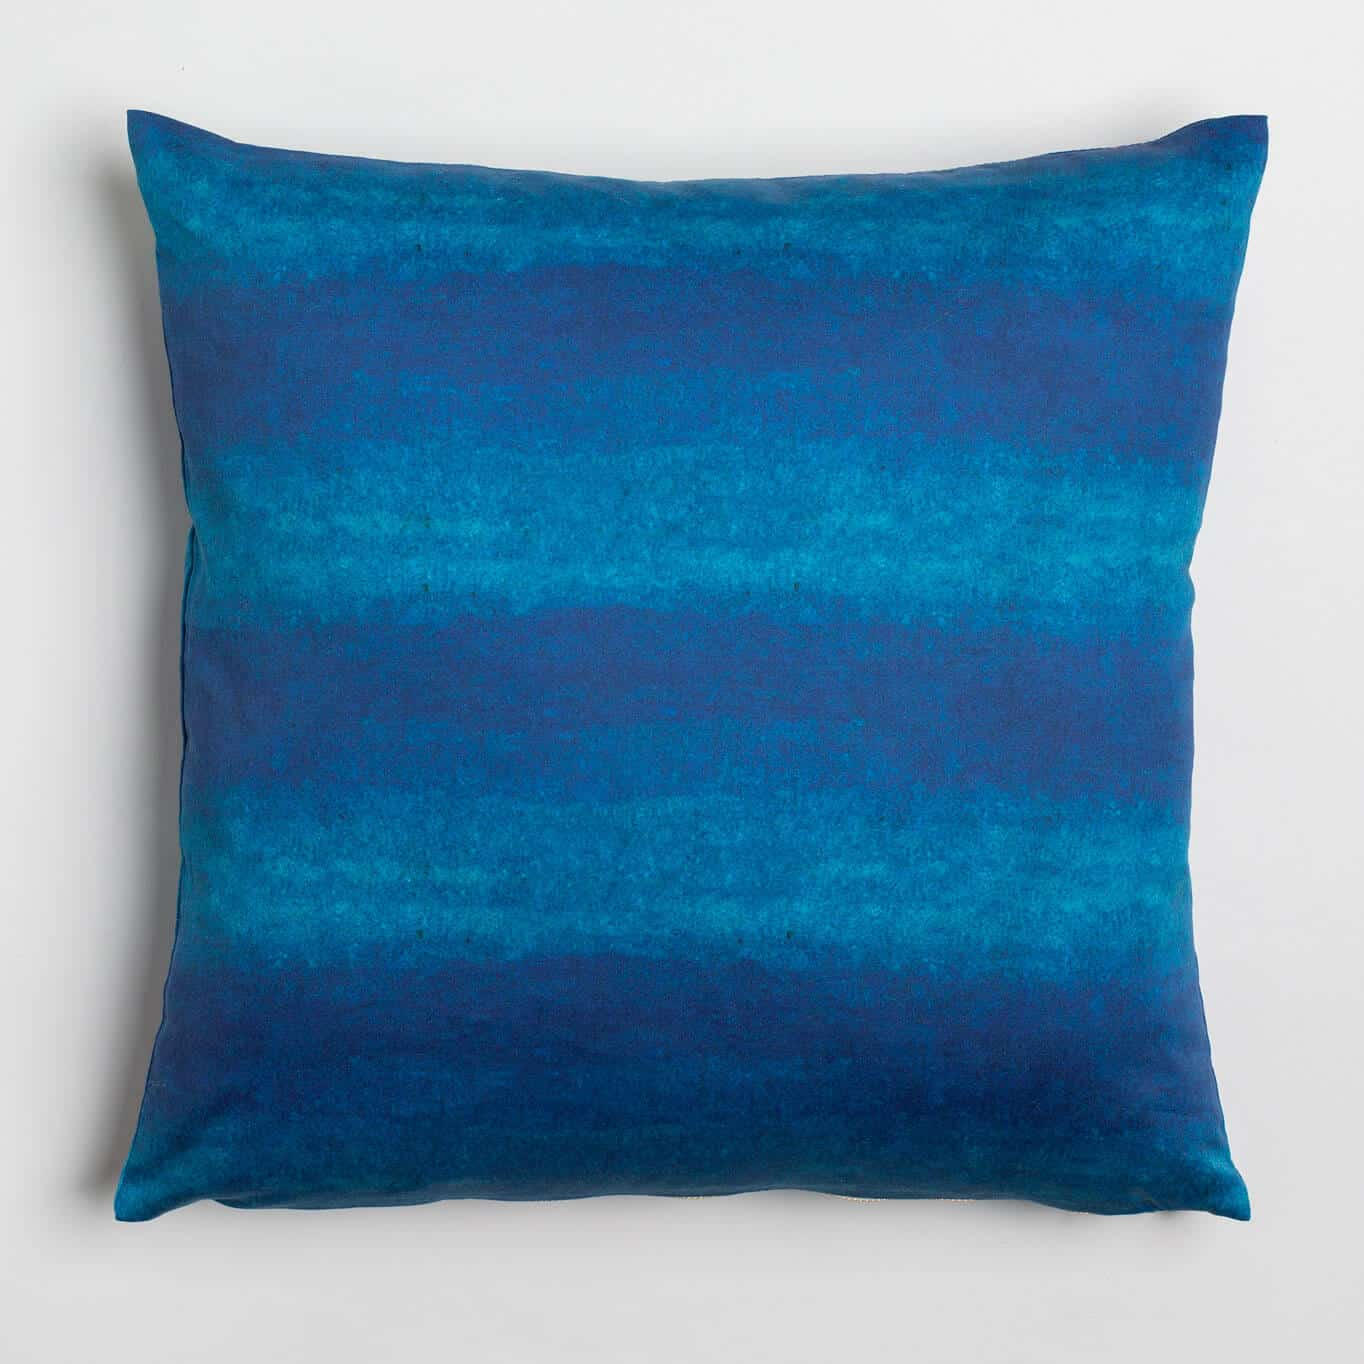 Luxury organic navy blue watercolor wash solid square pillow